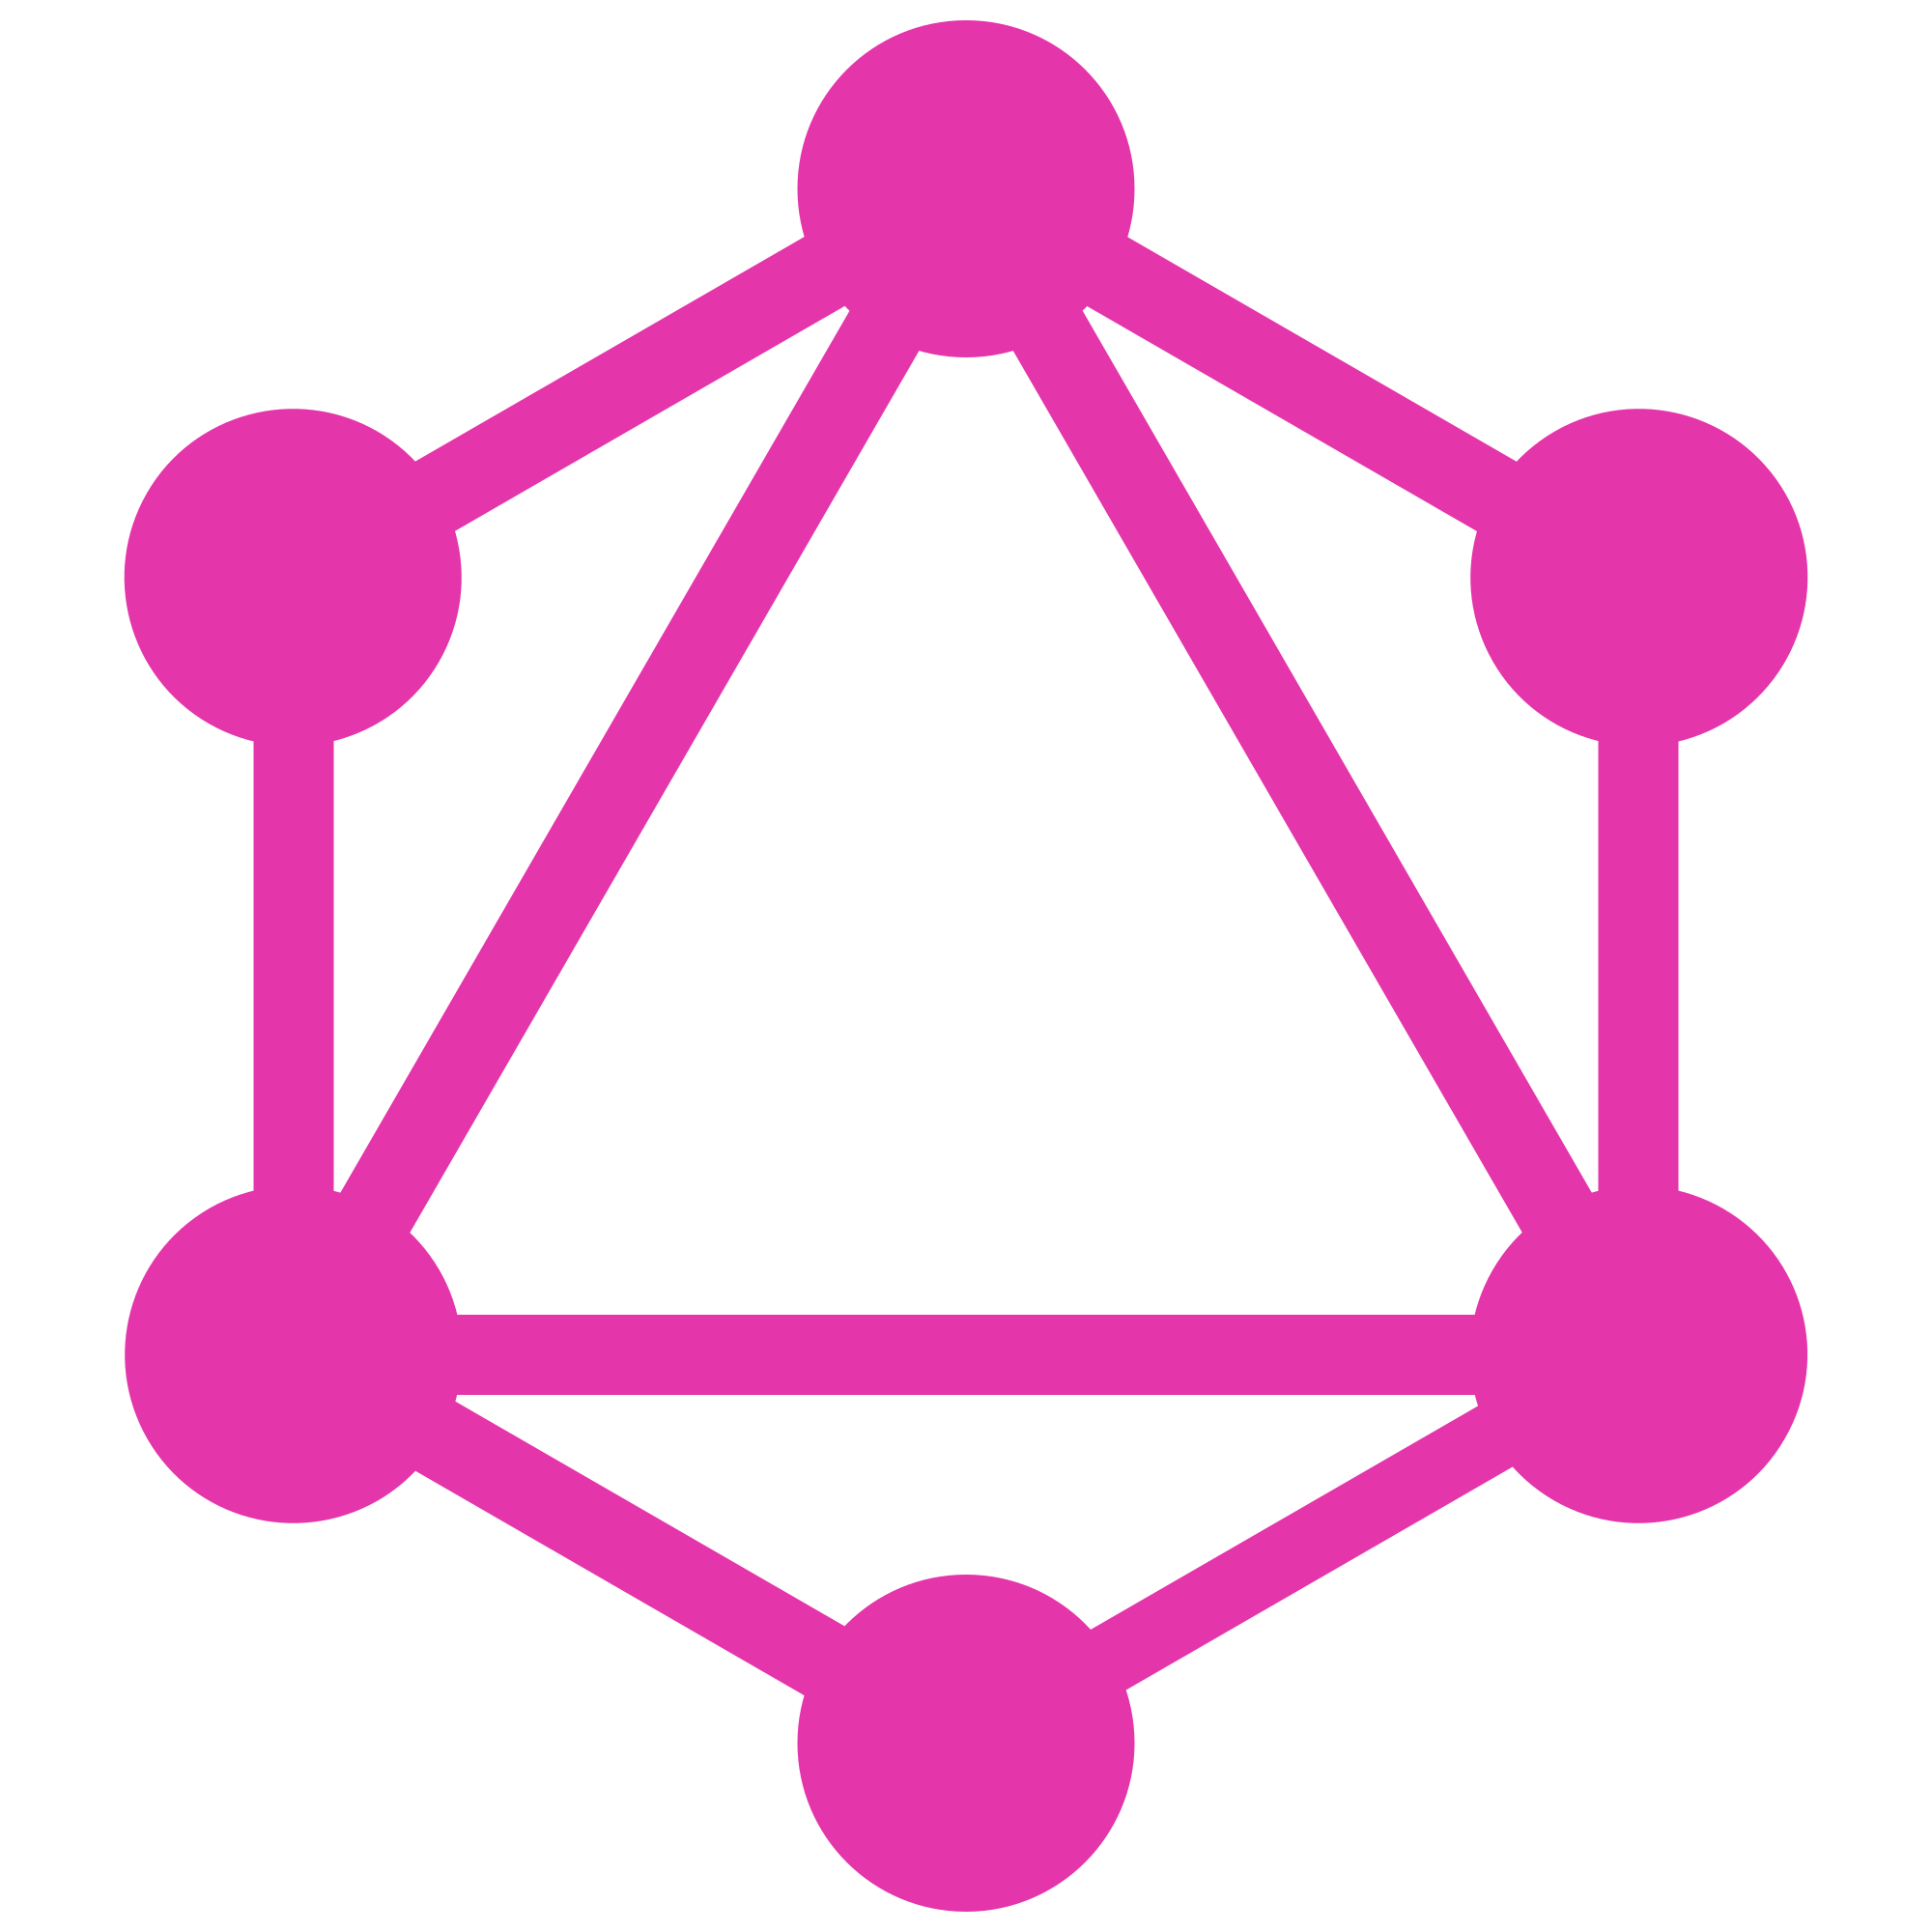 New feature: Editor support for testing GraphQL APIs